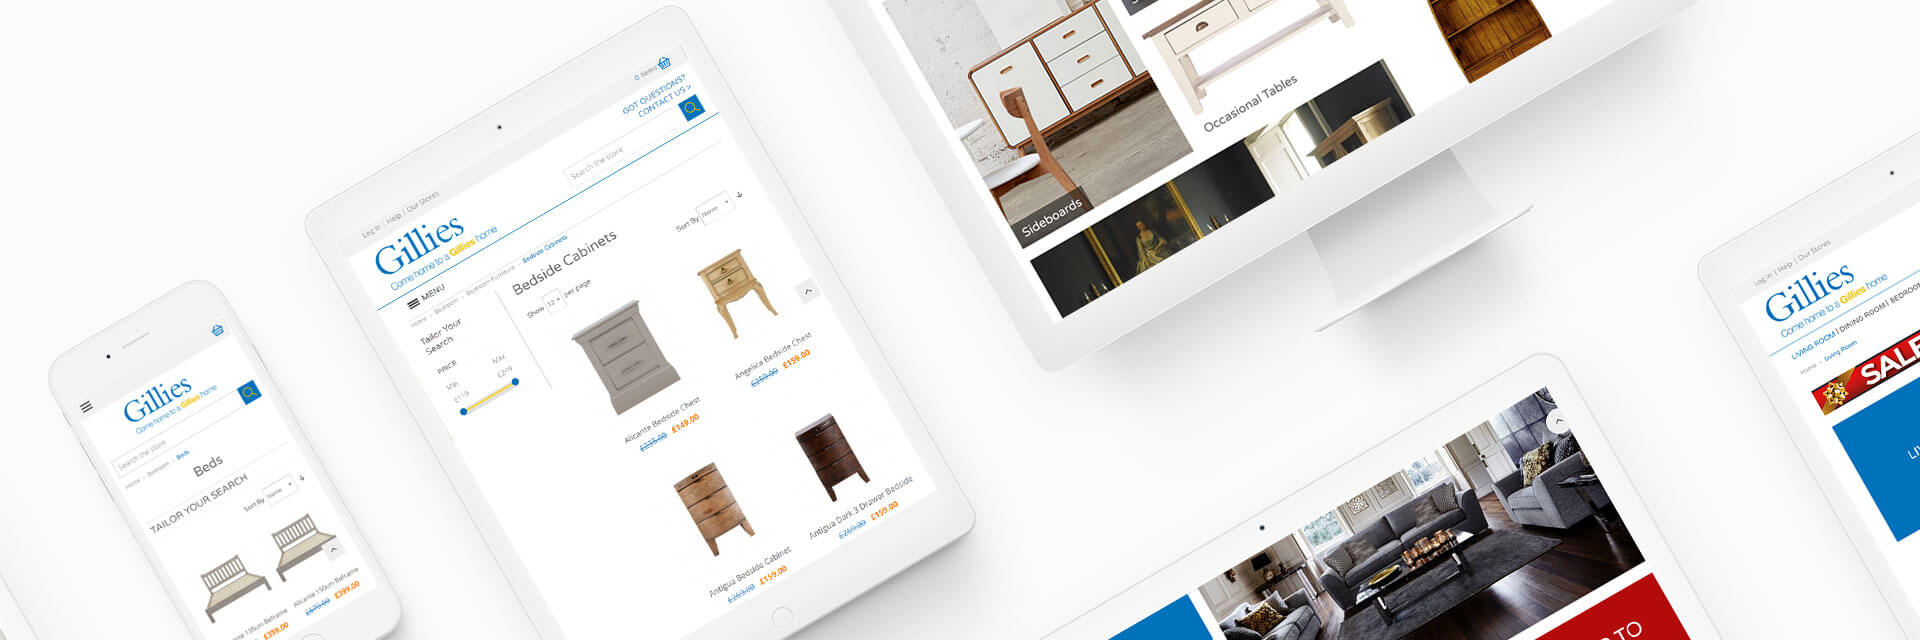 Gillies Furniture Magento Ecommerce Project